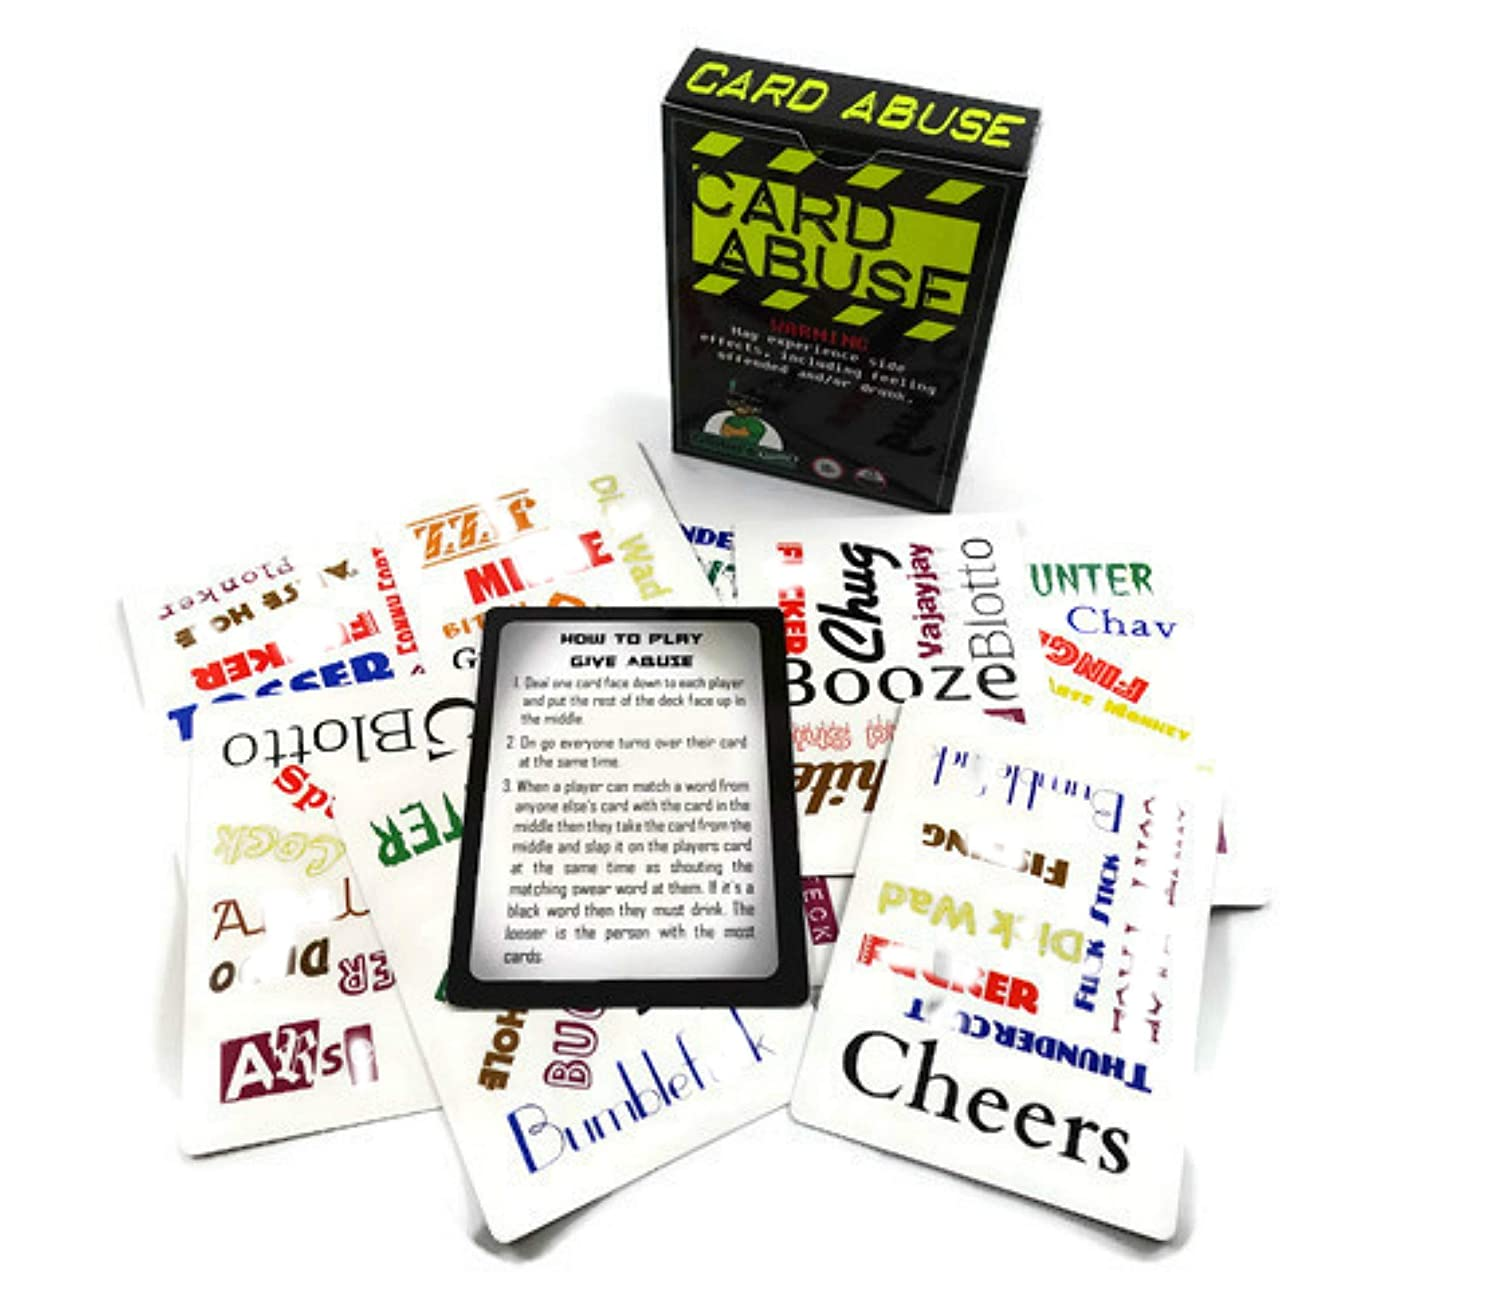 Card Abuse: Adult Card Game- Hilarious Word Matching With ...